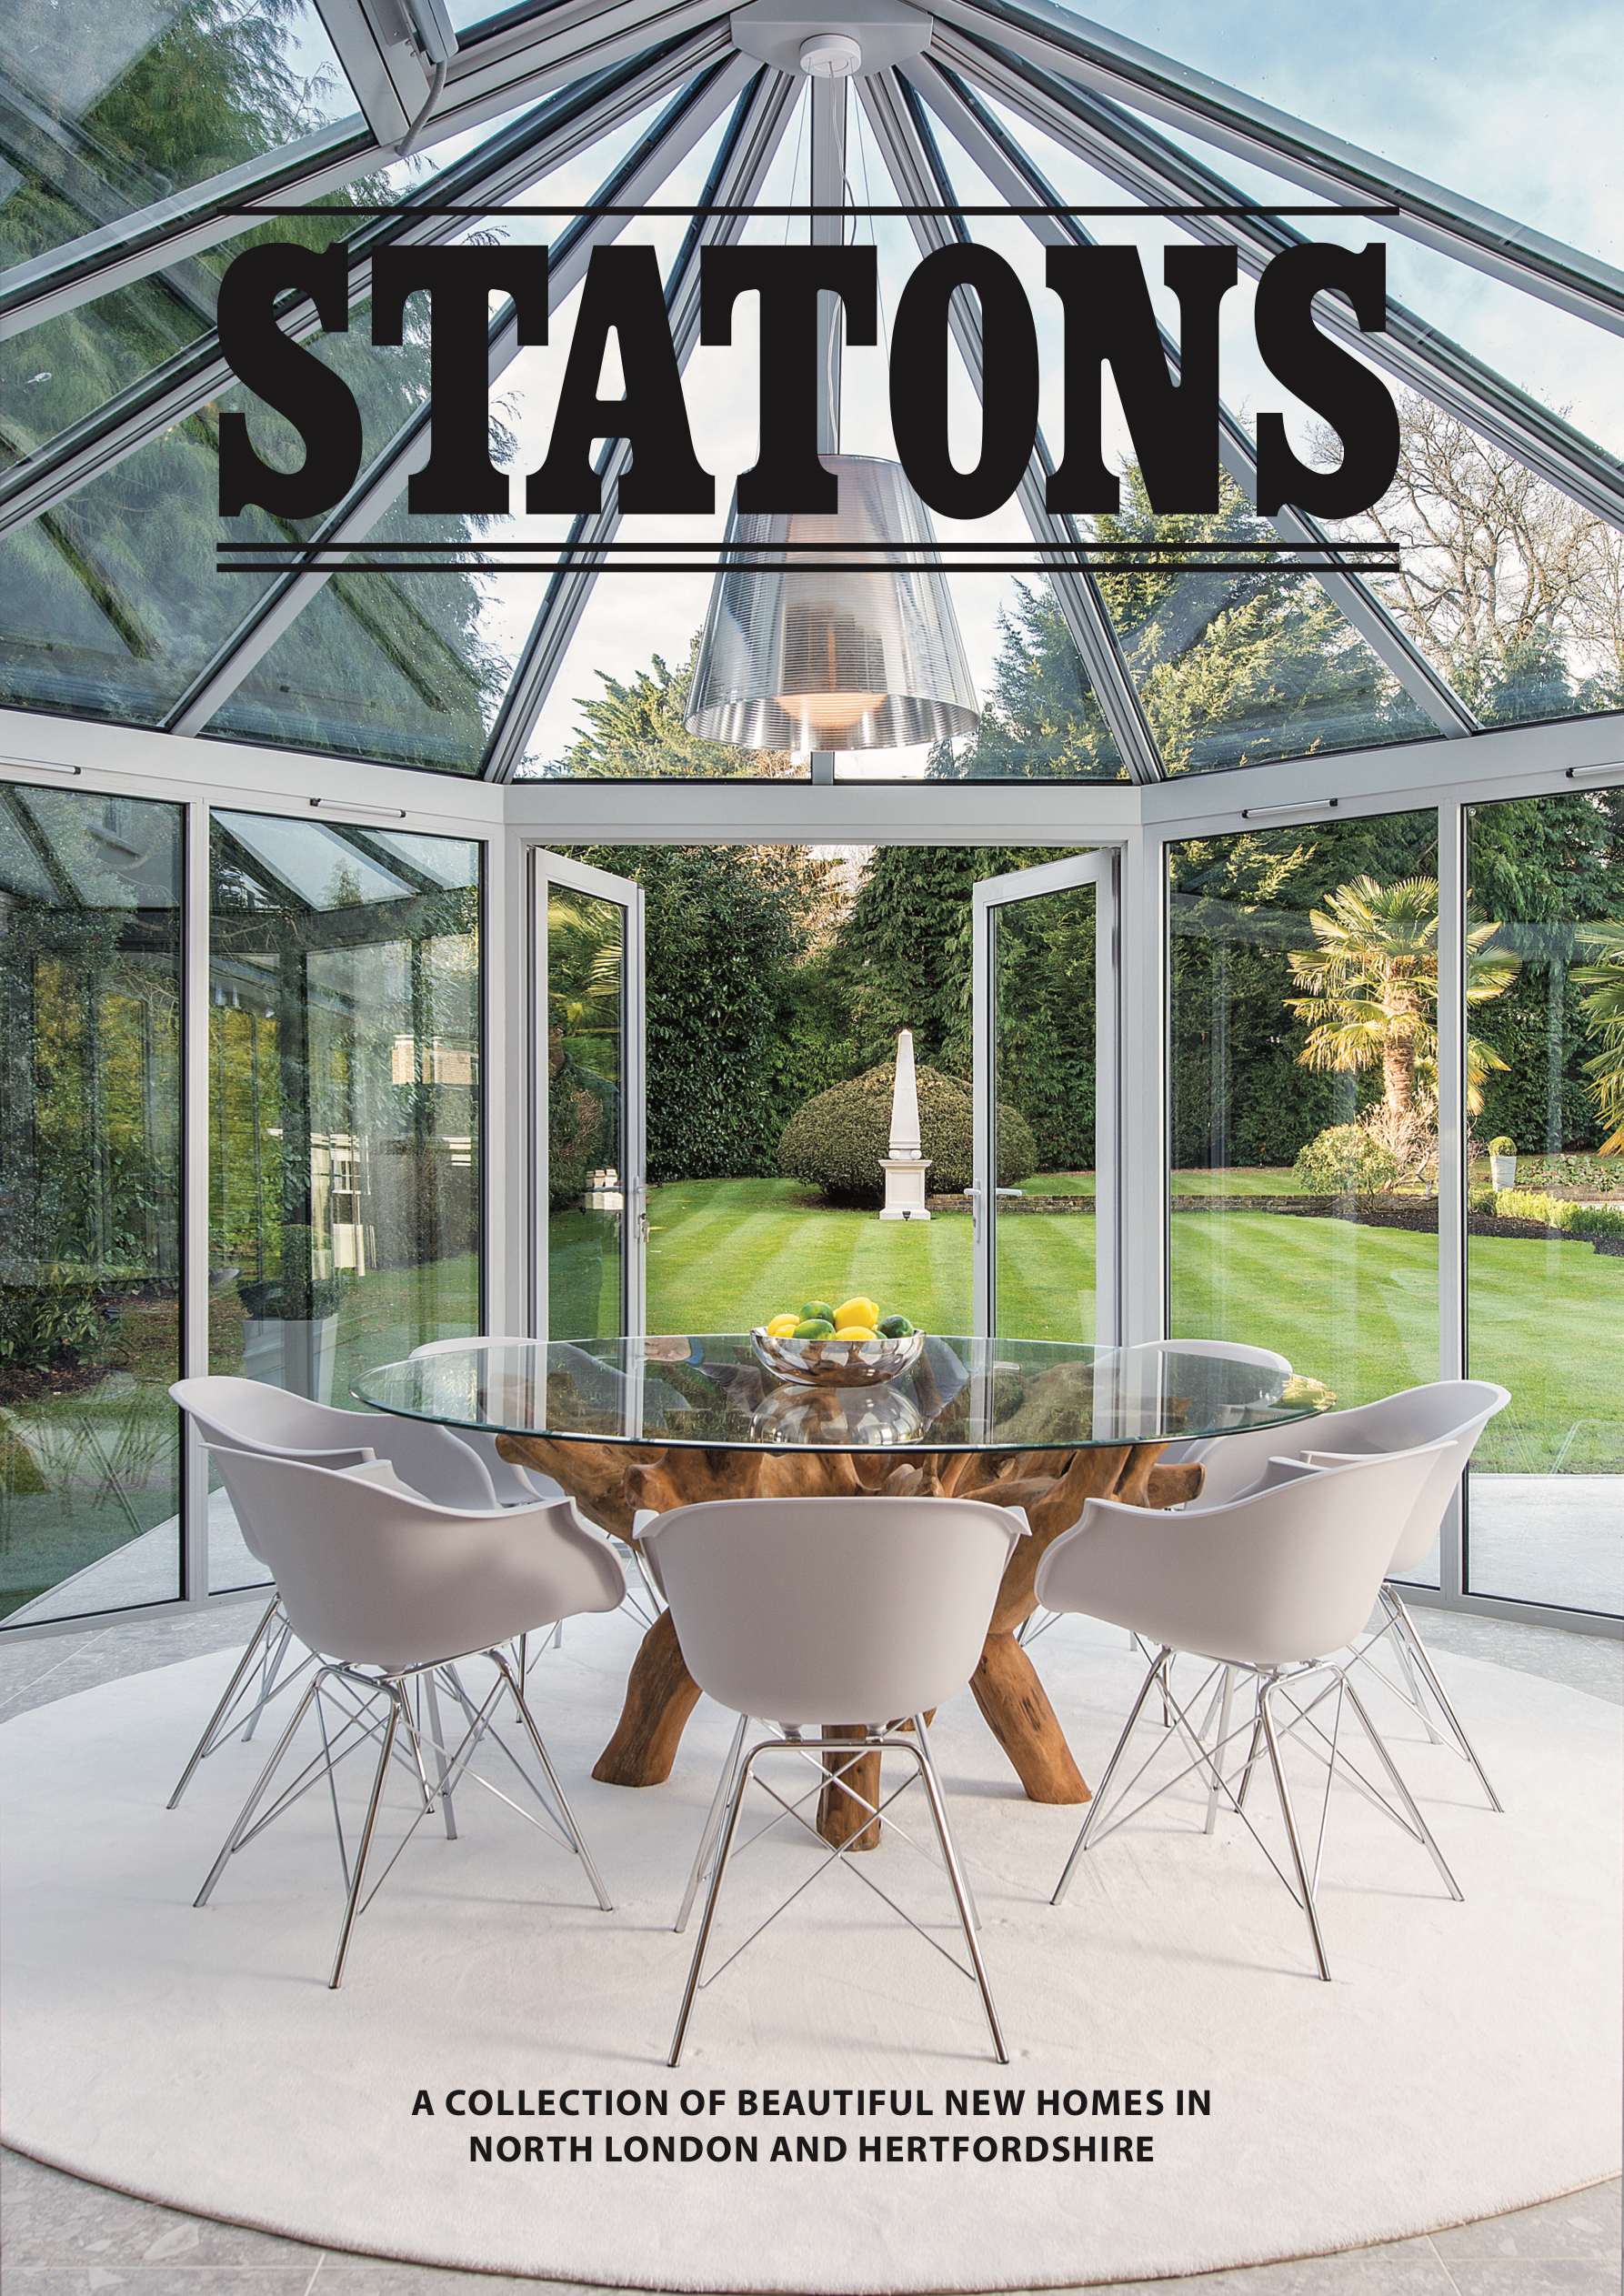 Statons New Homes 2018